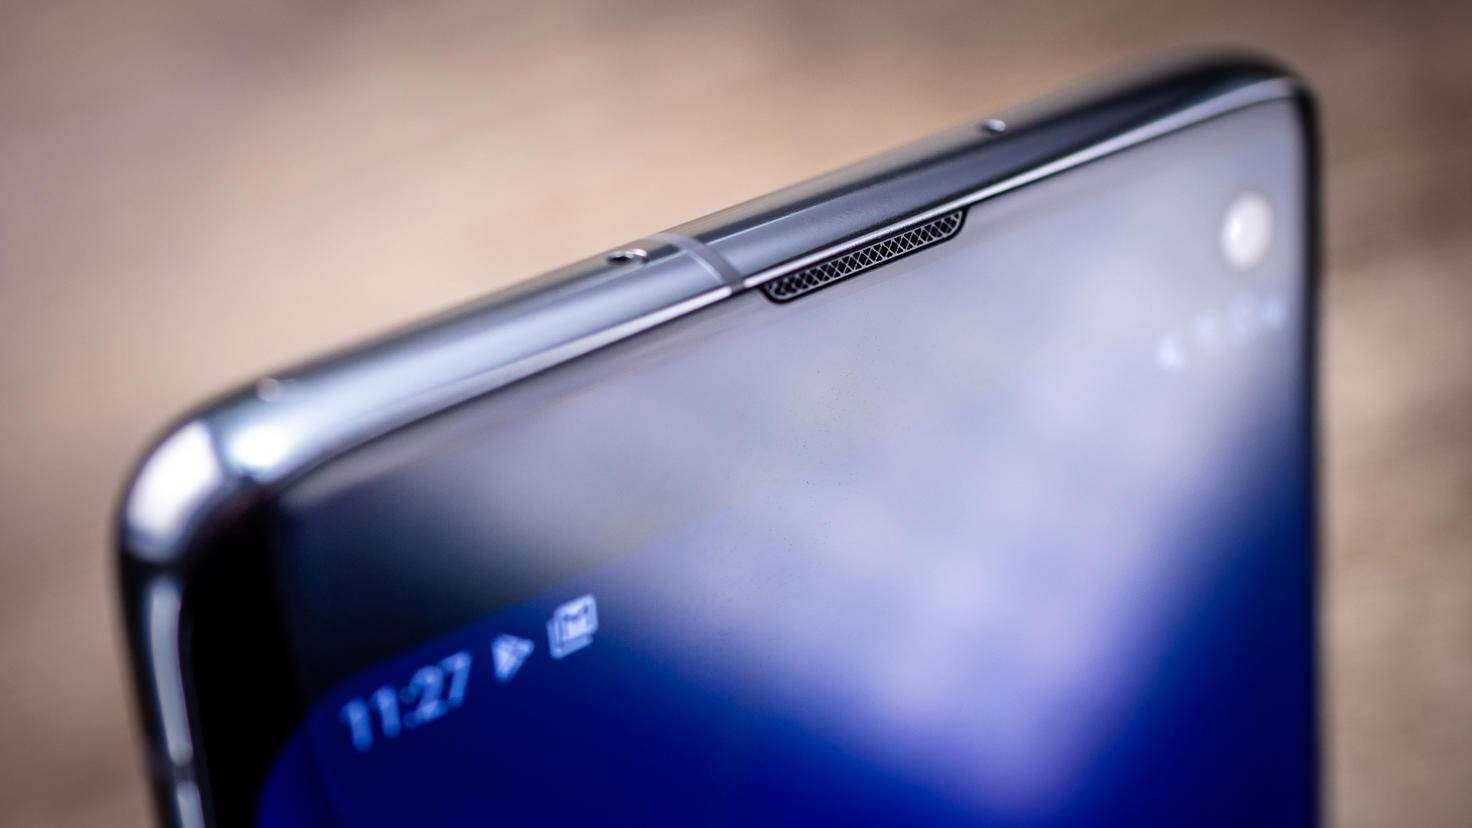 Samsung-Galaxy-S10-TURN-ON-Lautsprecher